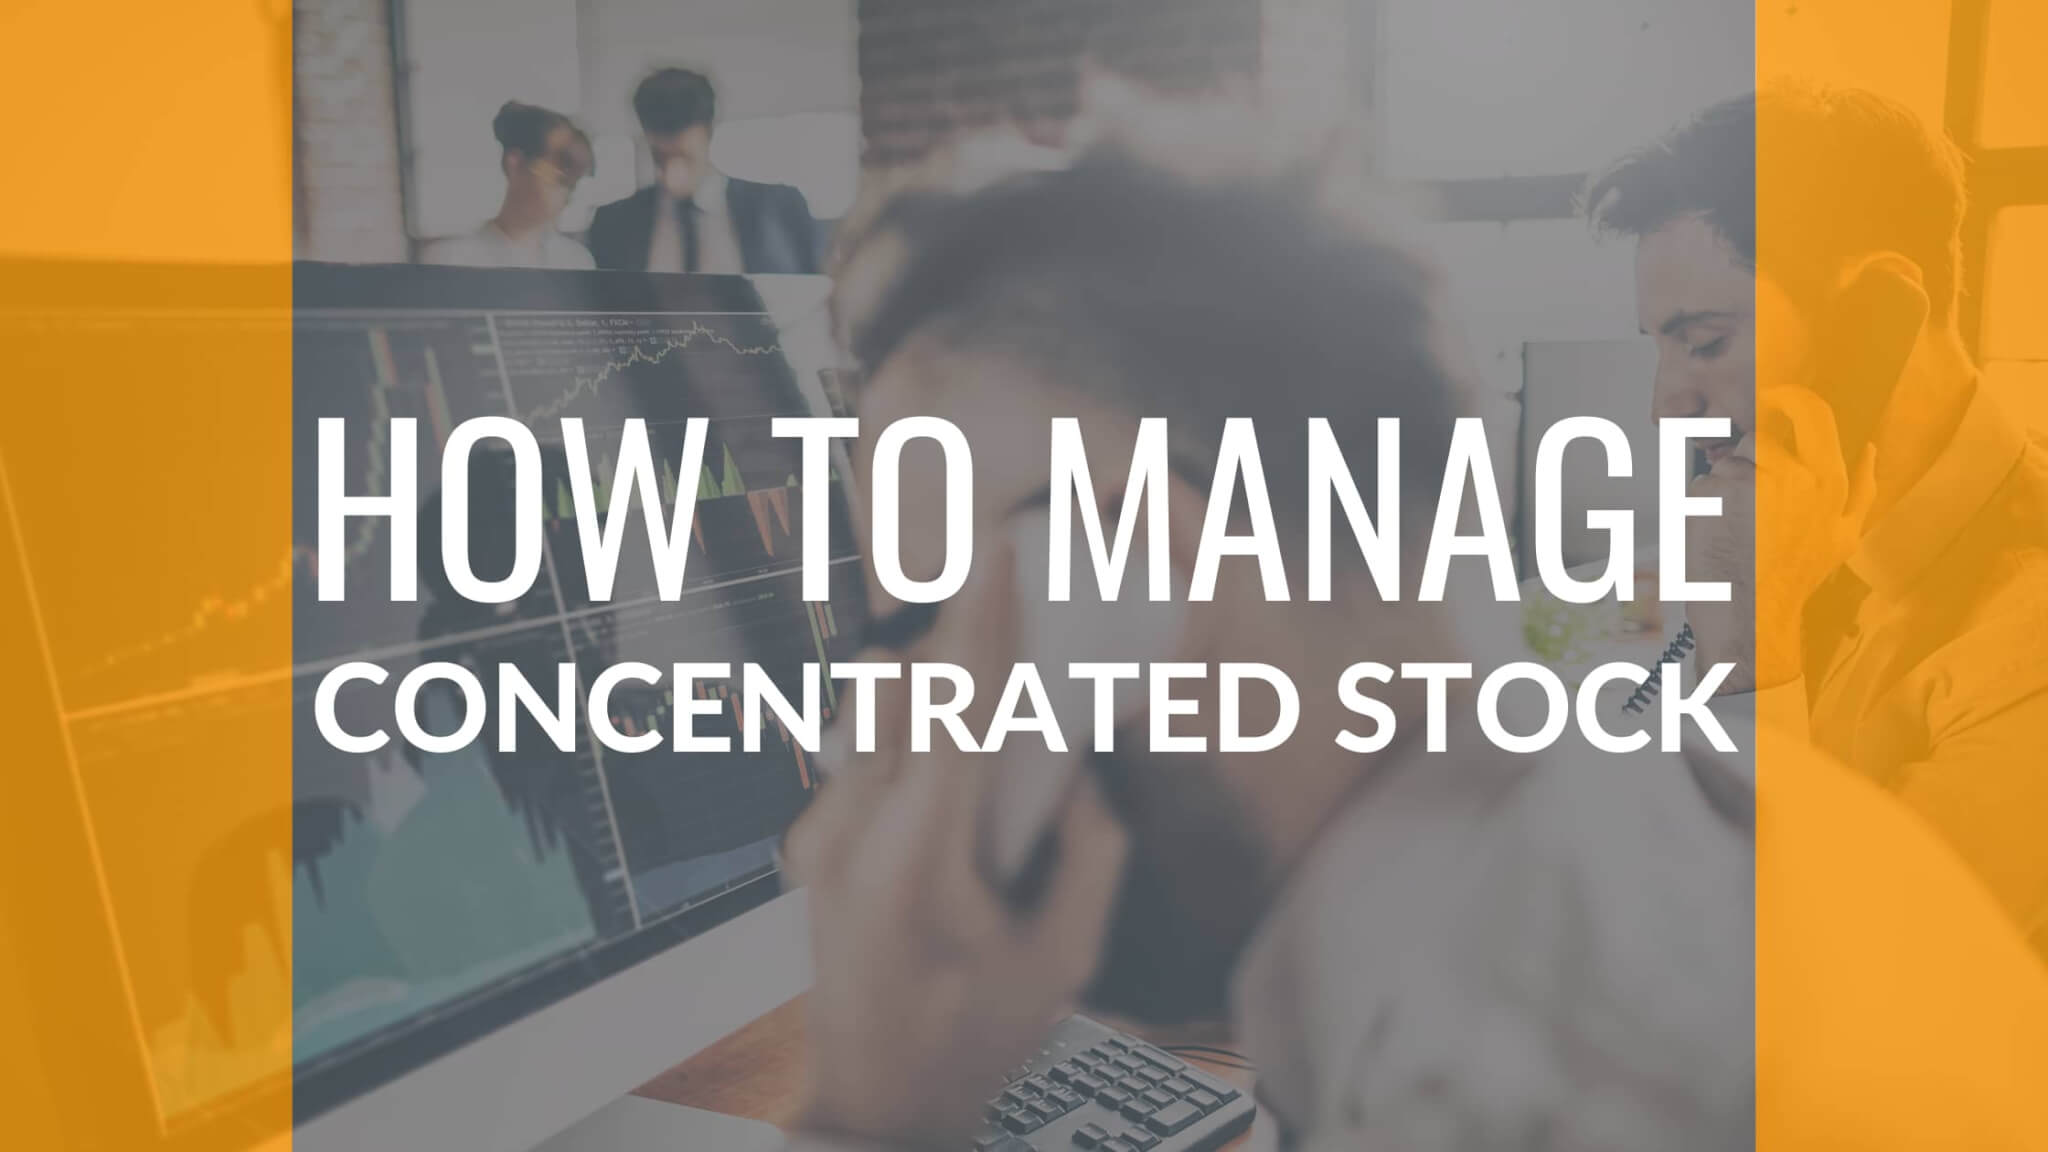 How To Manage Concentrated Stock